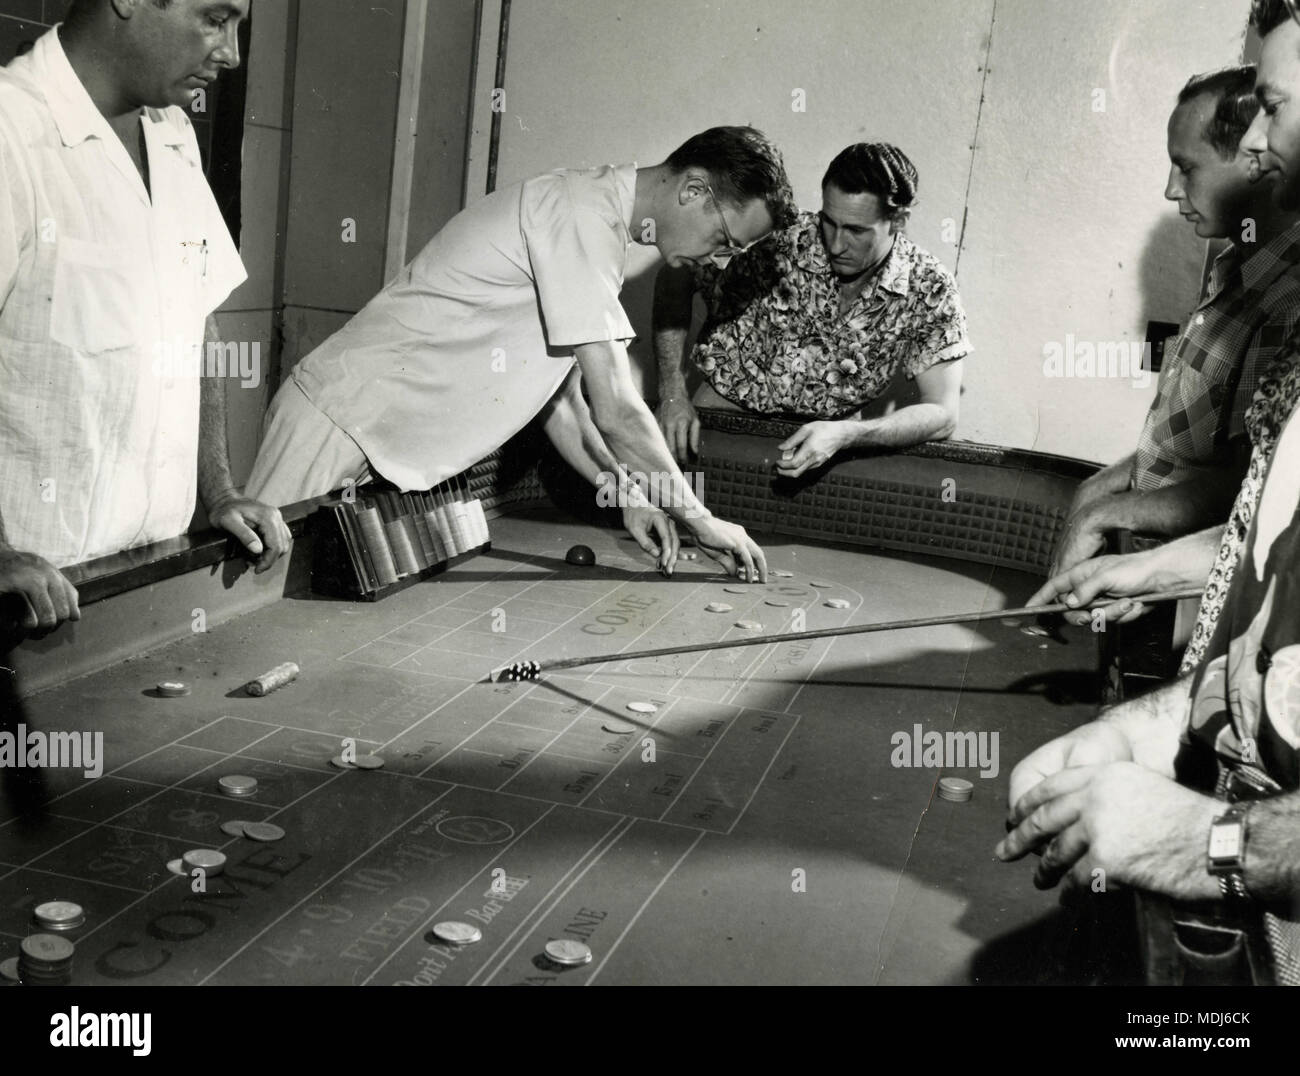 Dice gamble class for dealers at the College of Gambling, Las Vegas, USA 1953 - Stock Image